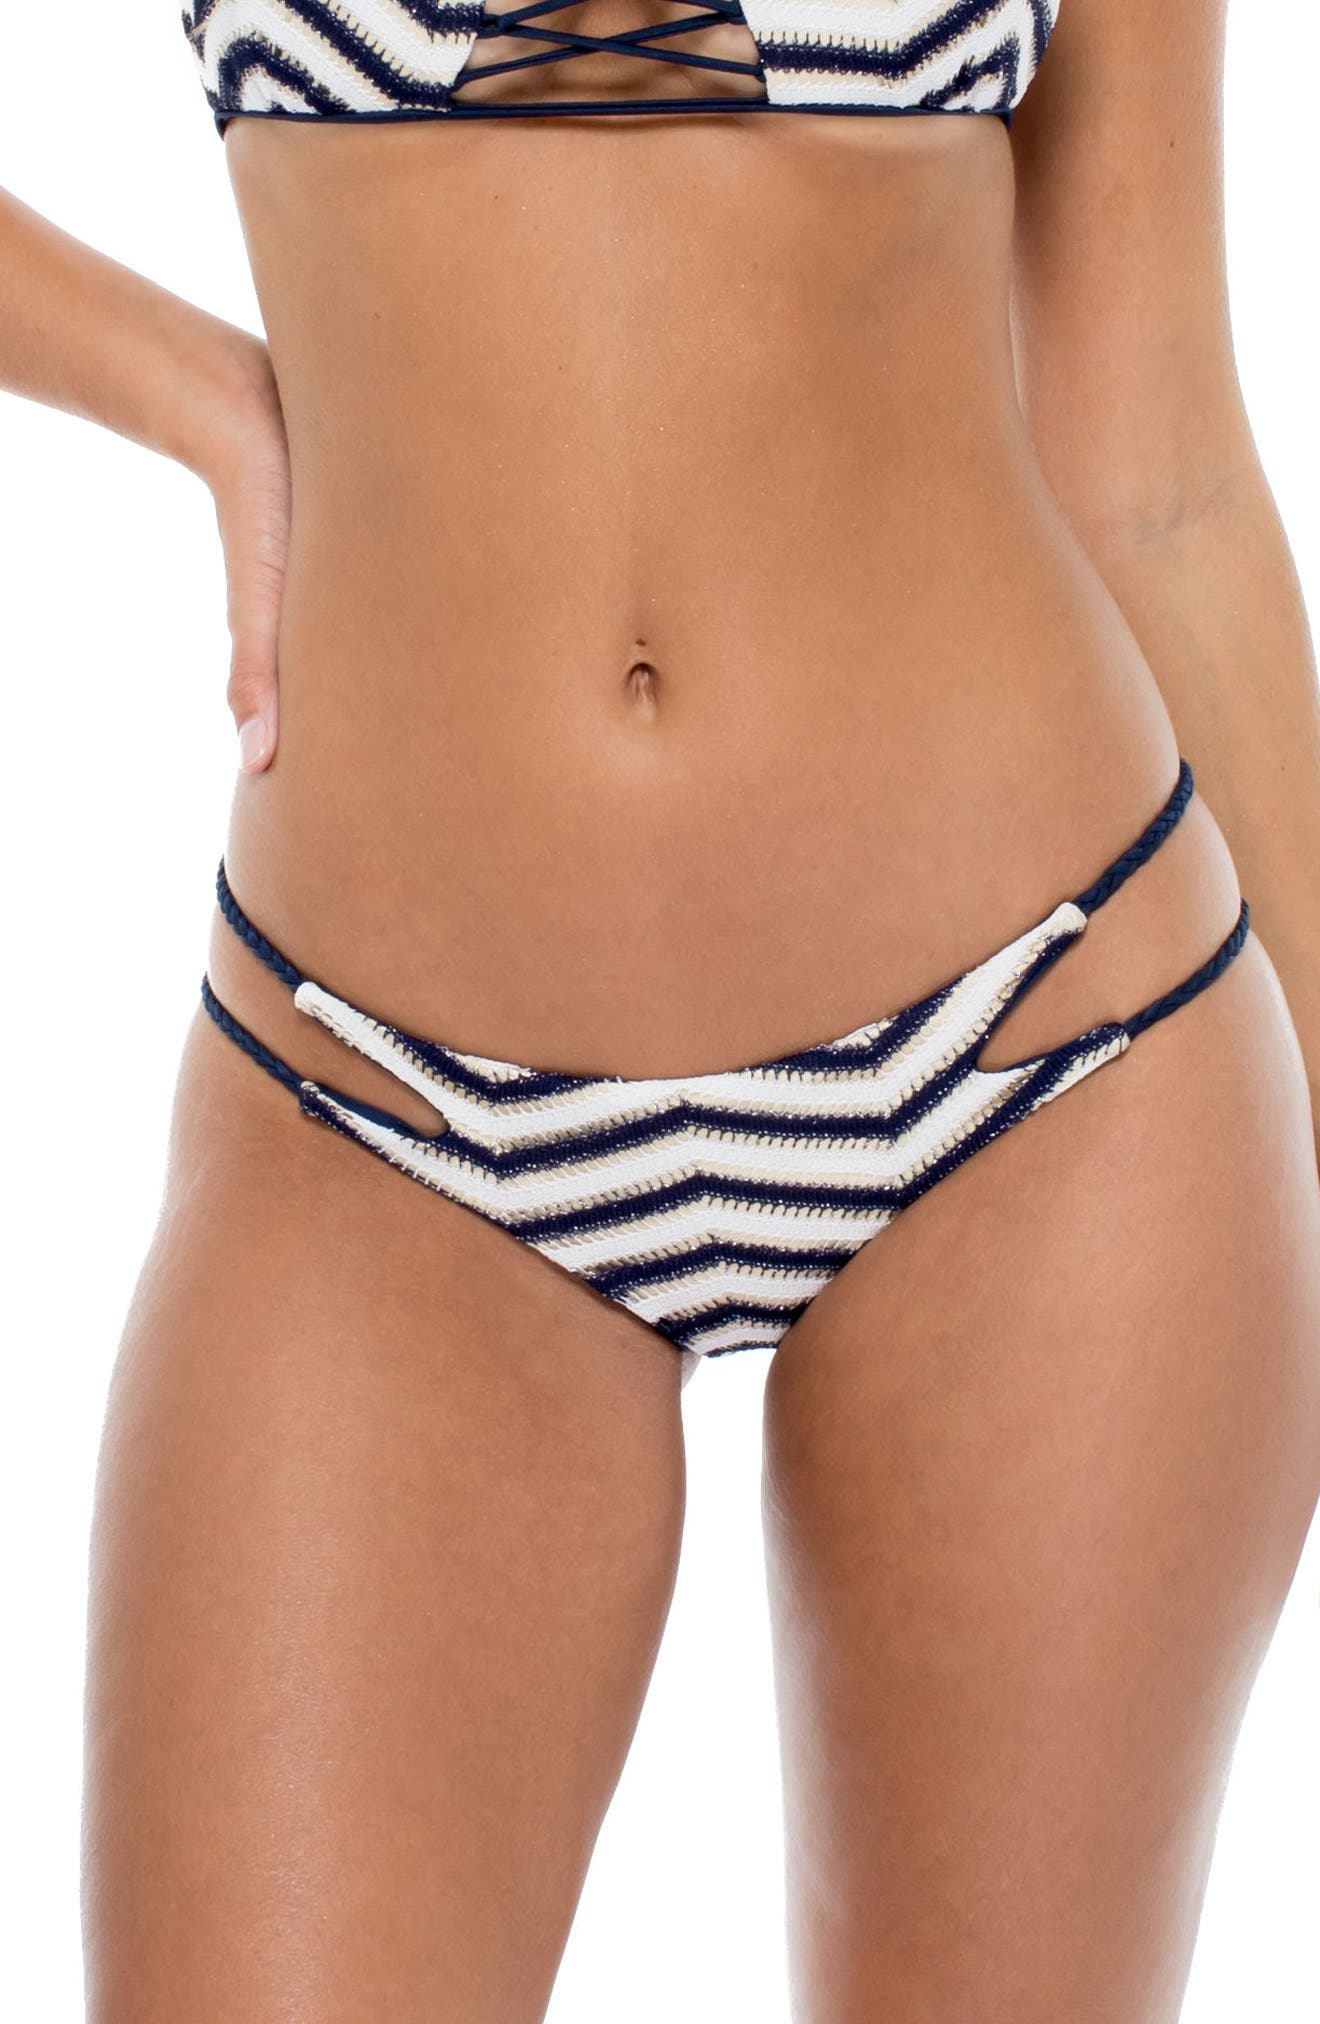 Varadero Bikini Bottoms,                             Alternate thumbnail 2, color,                             Marino Blue